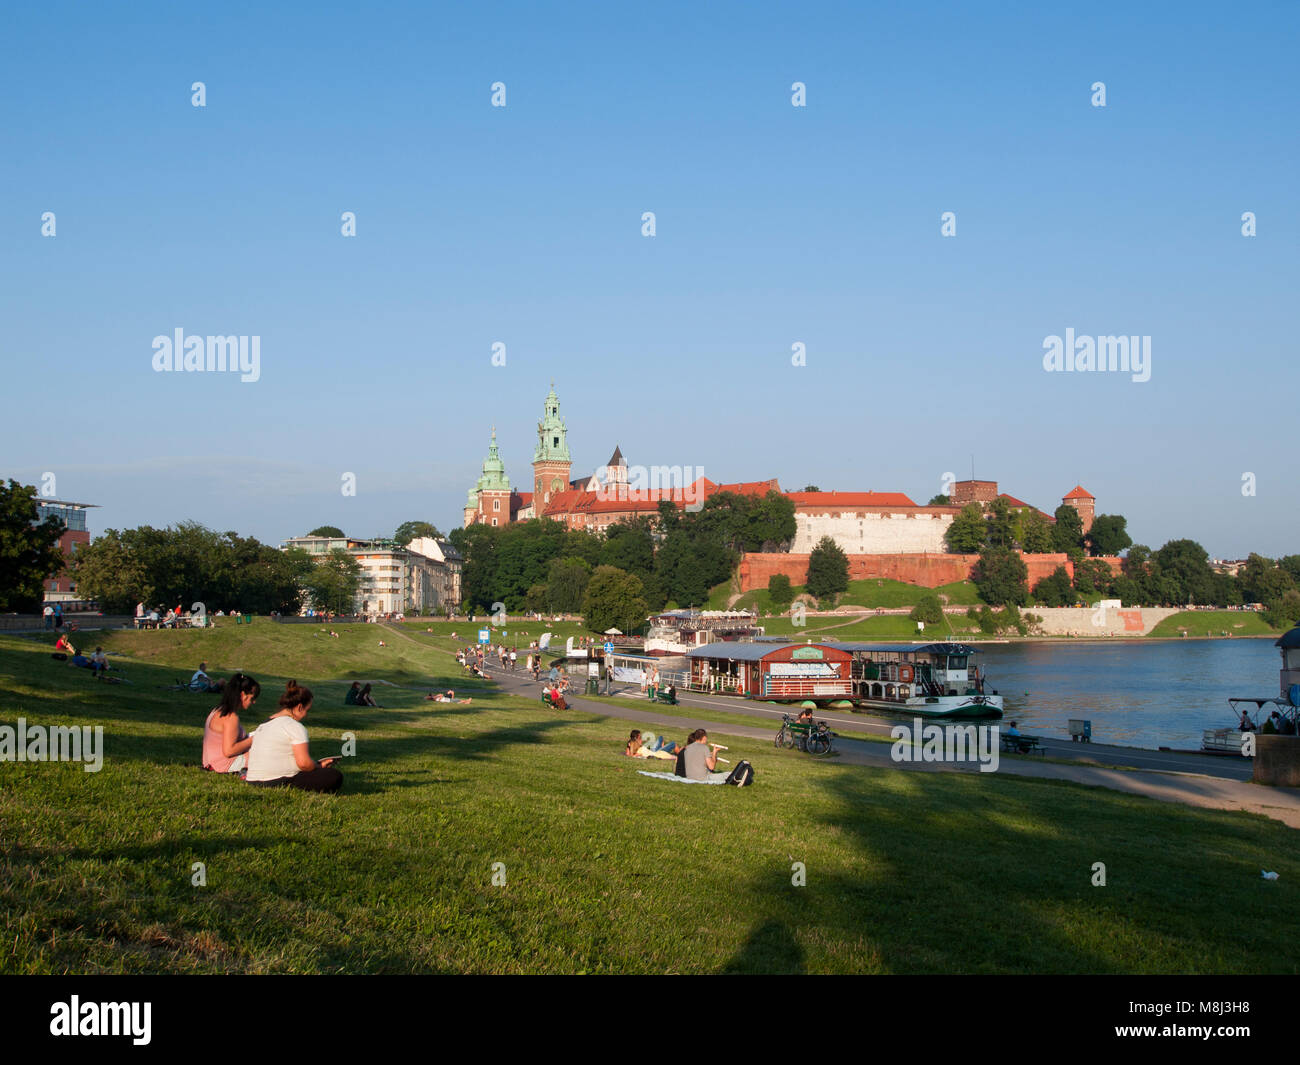 Relax by the Vistula River Stock Photo